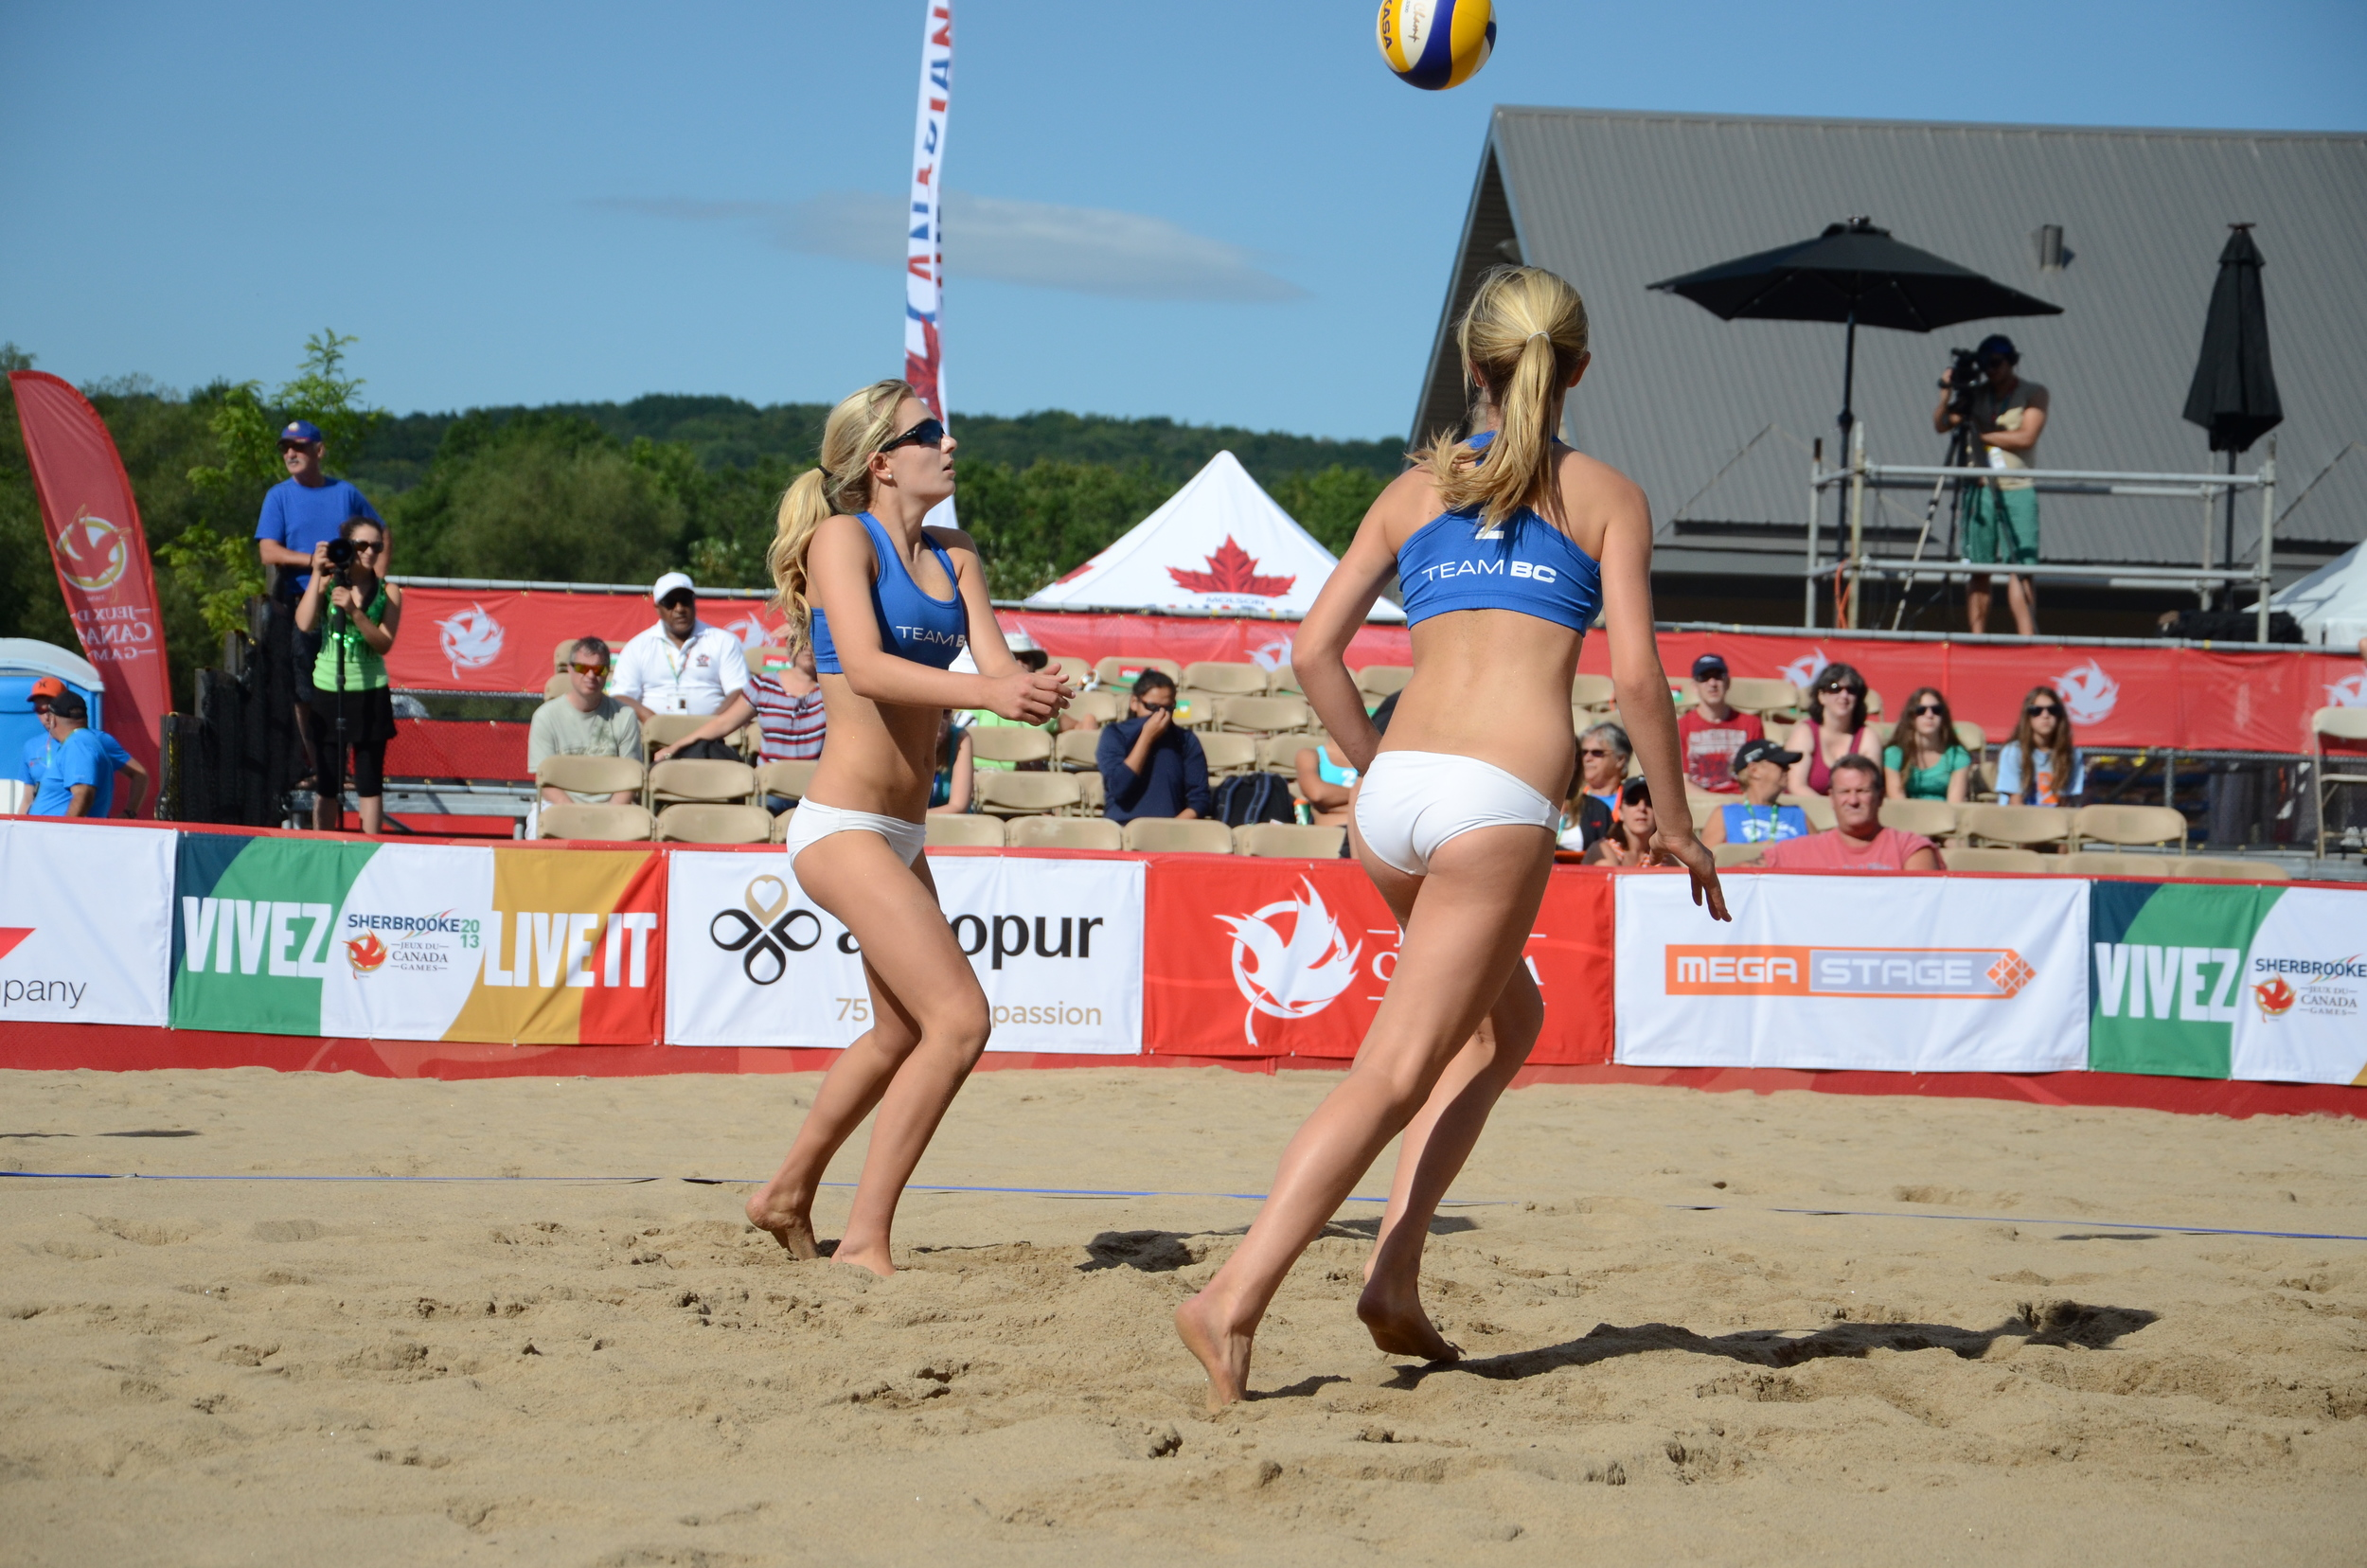 The McNamara twins from BC will be featured in the women's final on live at 11:30 on TSN2